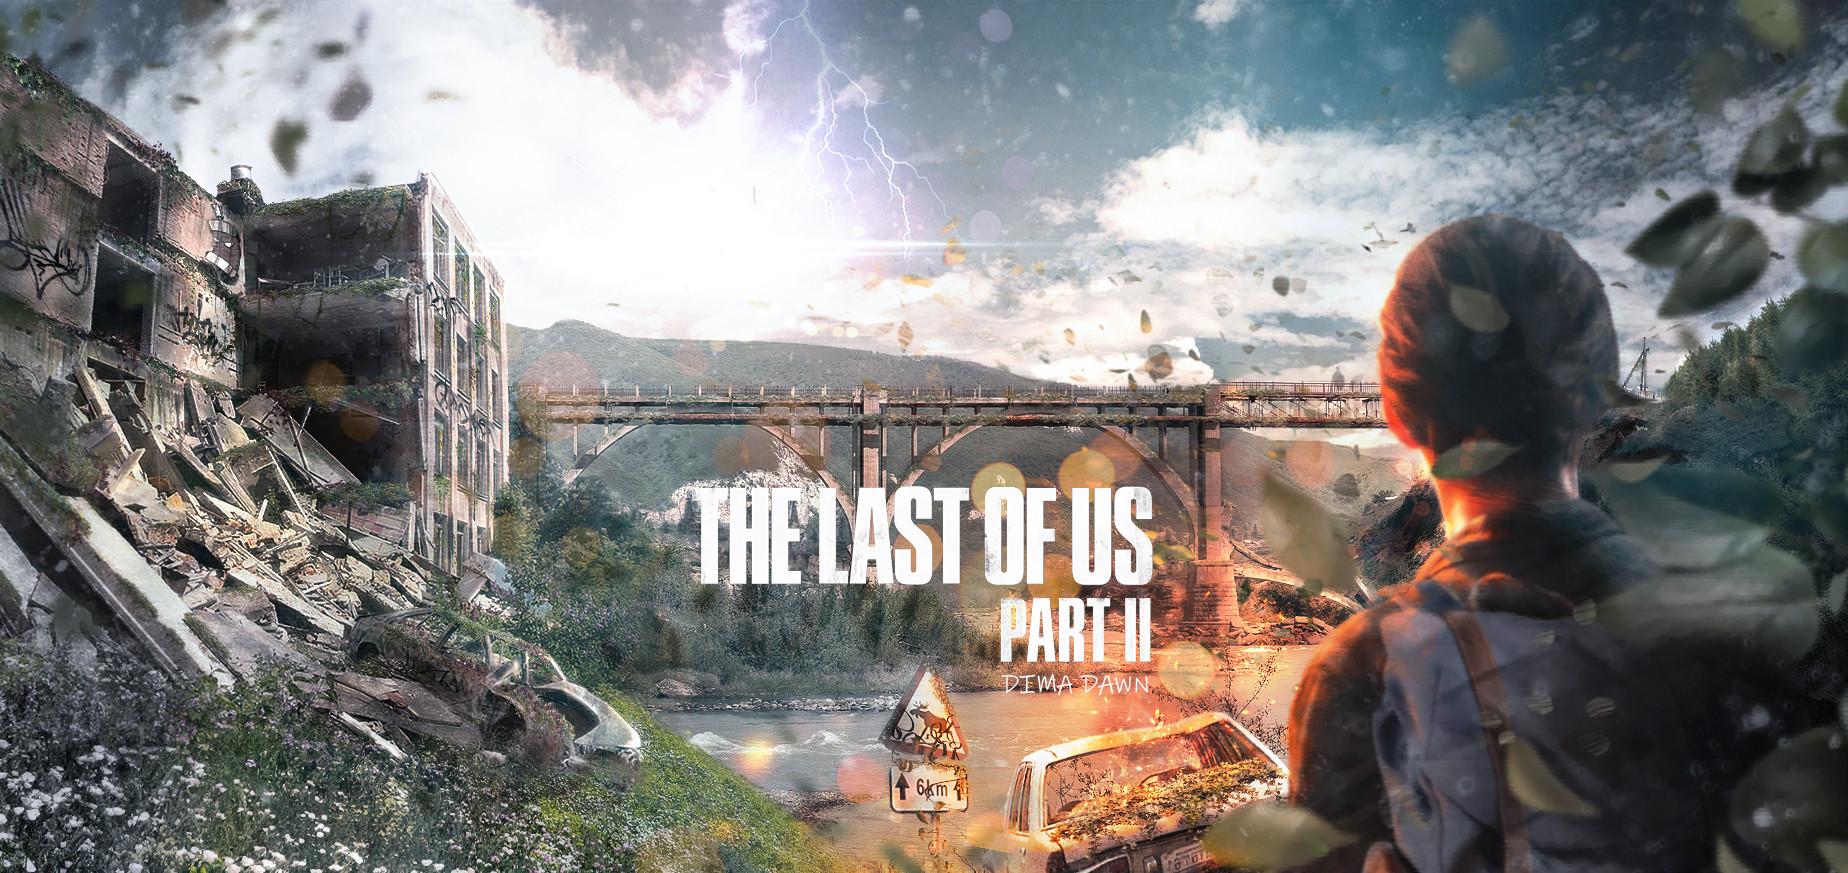 Art Wallpaper Hd Artstation The Last Of Us Part 2 The Last Of Us Part